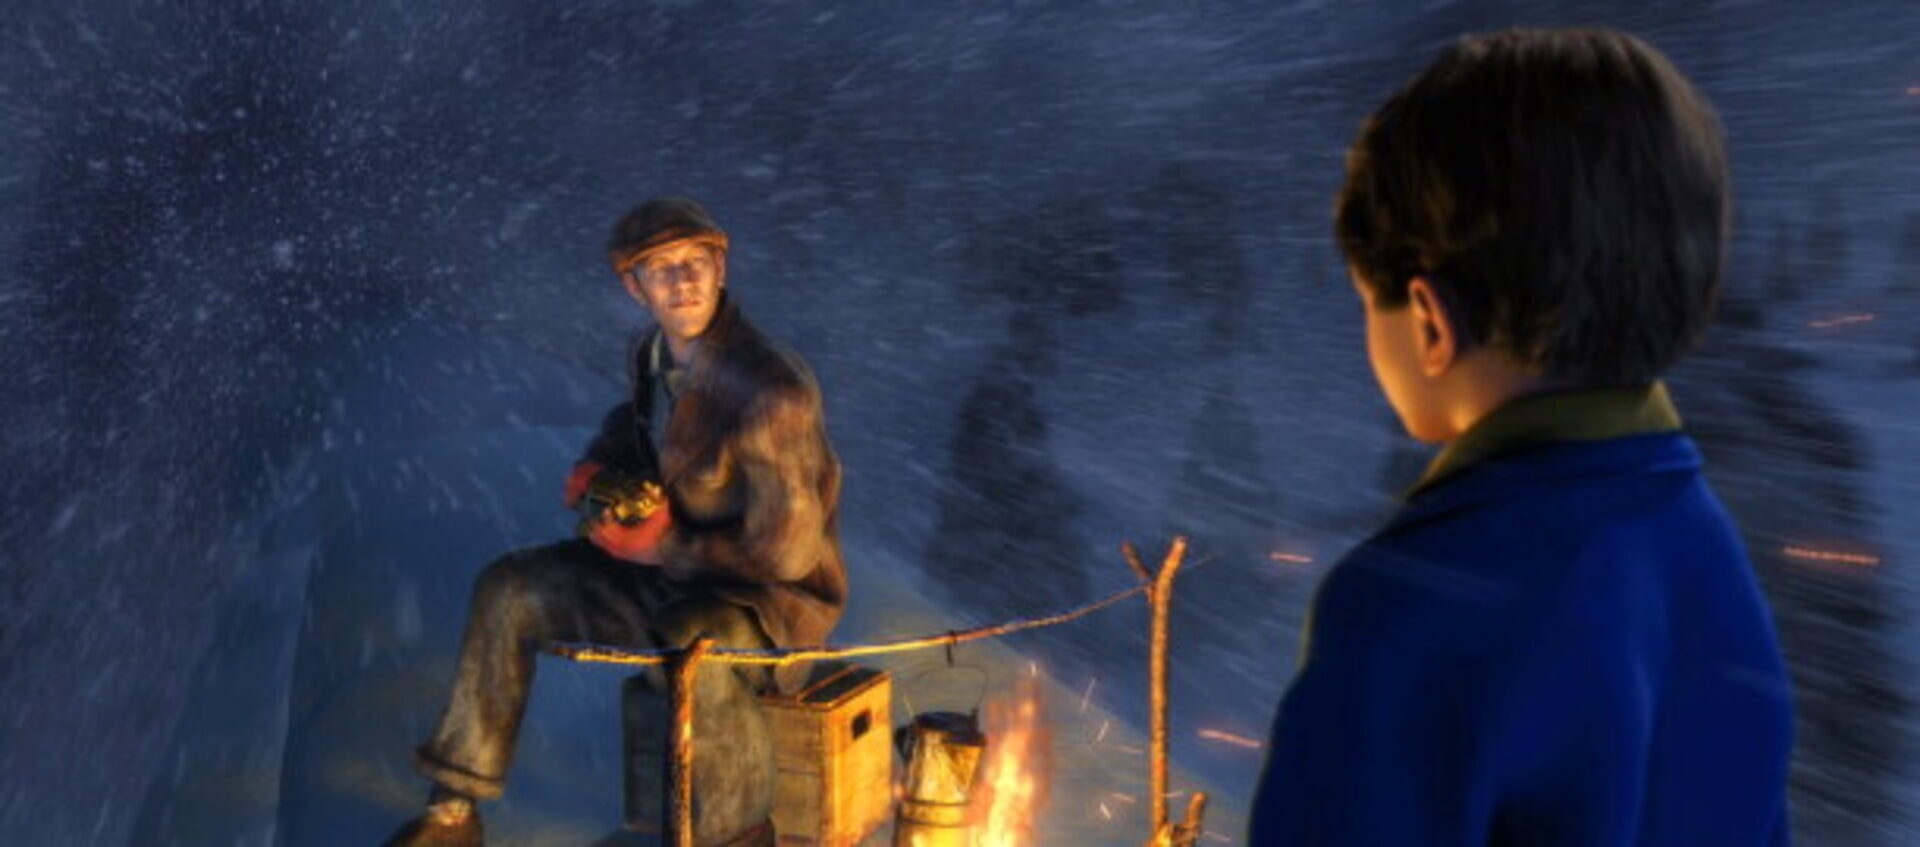 The Polar Express - Image 30